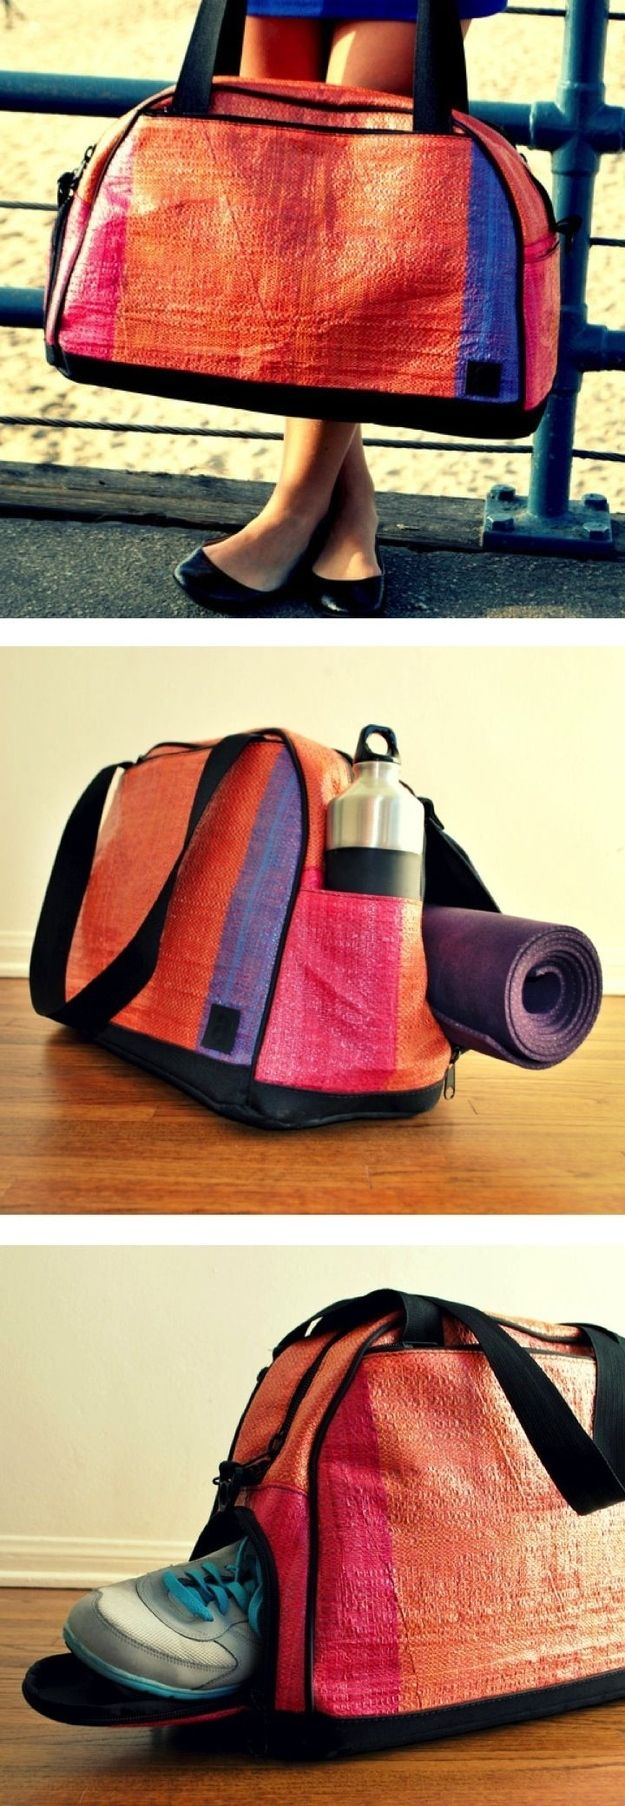 The Activyst gym bag has a compartment for EVERYTHING. | 28 Clever Products You Need To Get In Shape For 2014